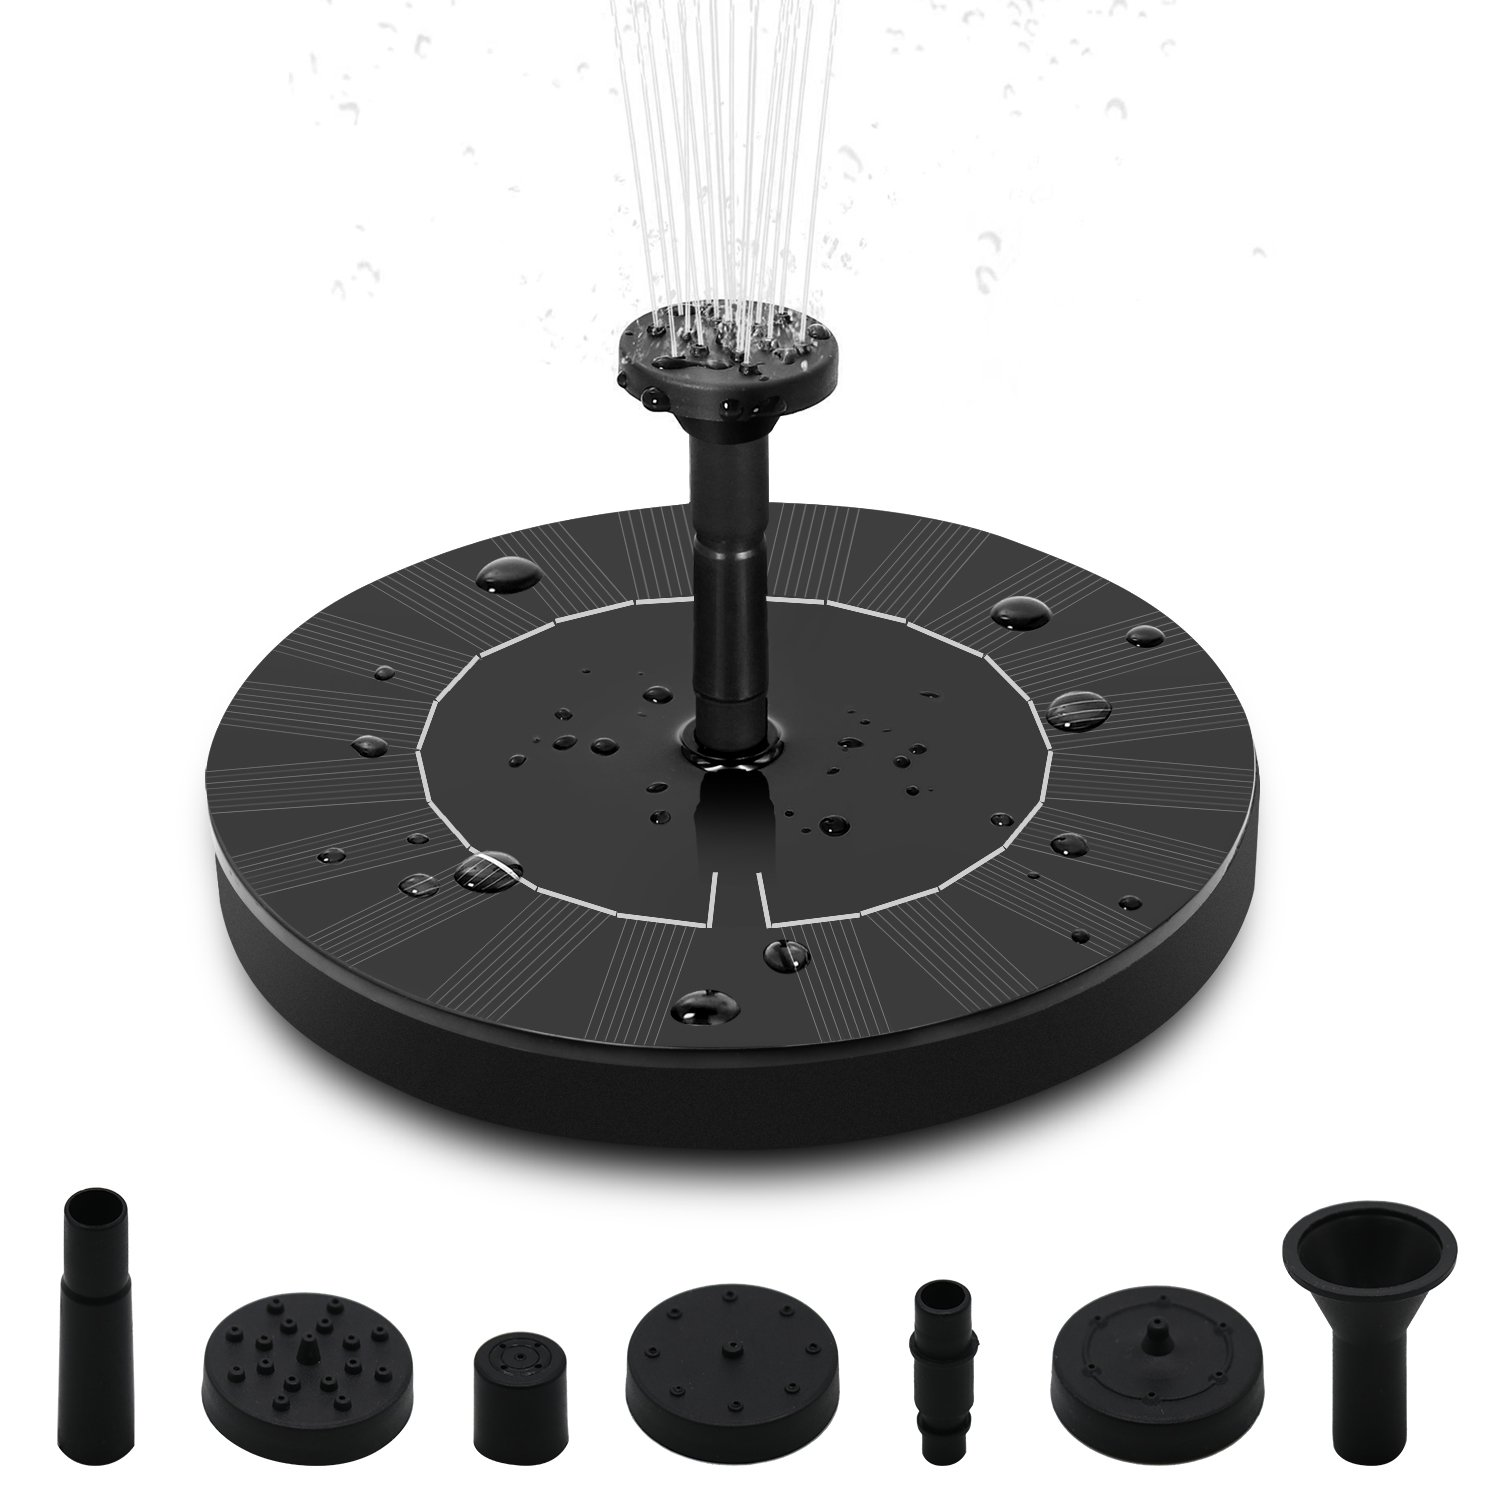 CINOTON Solar Fountain, Solar Powered Bird Bath Pump 1.4W Floating Solar Panel Fountain Water Pumps Kit Outdoor Birdbath Water Fountain Pump for Pond, Pool, Patio and Garden Decoration (with Battery)